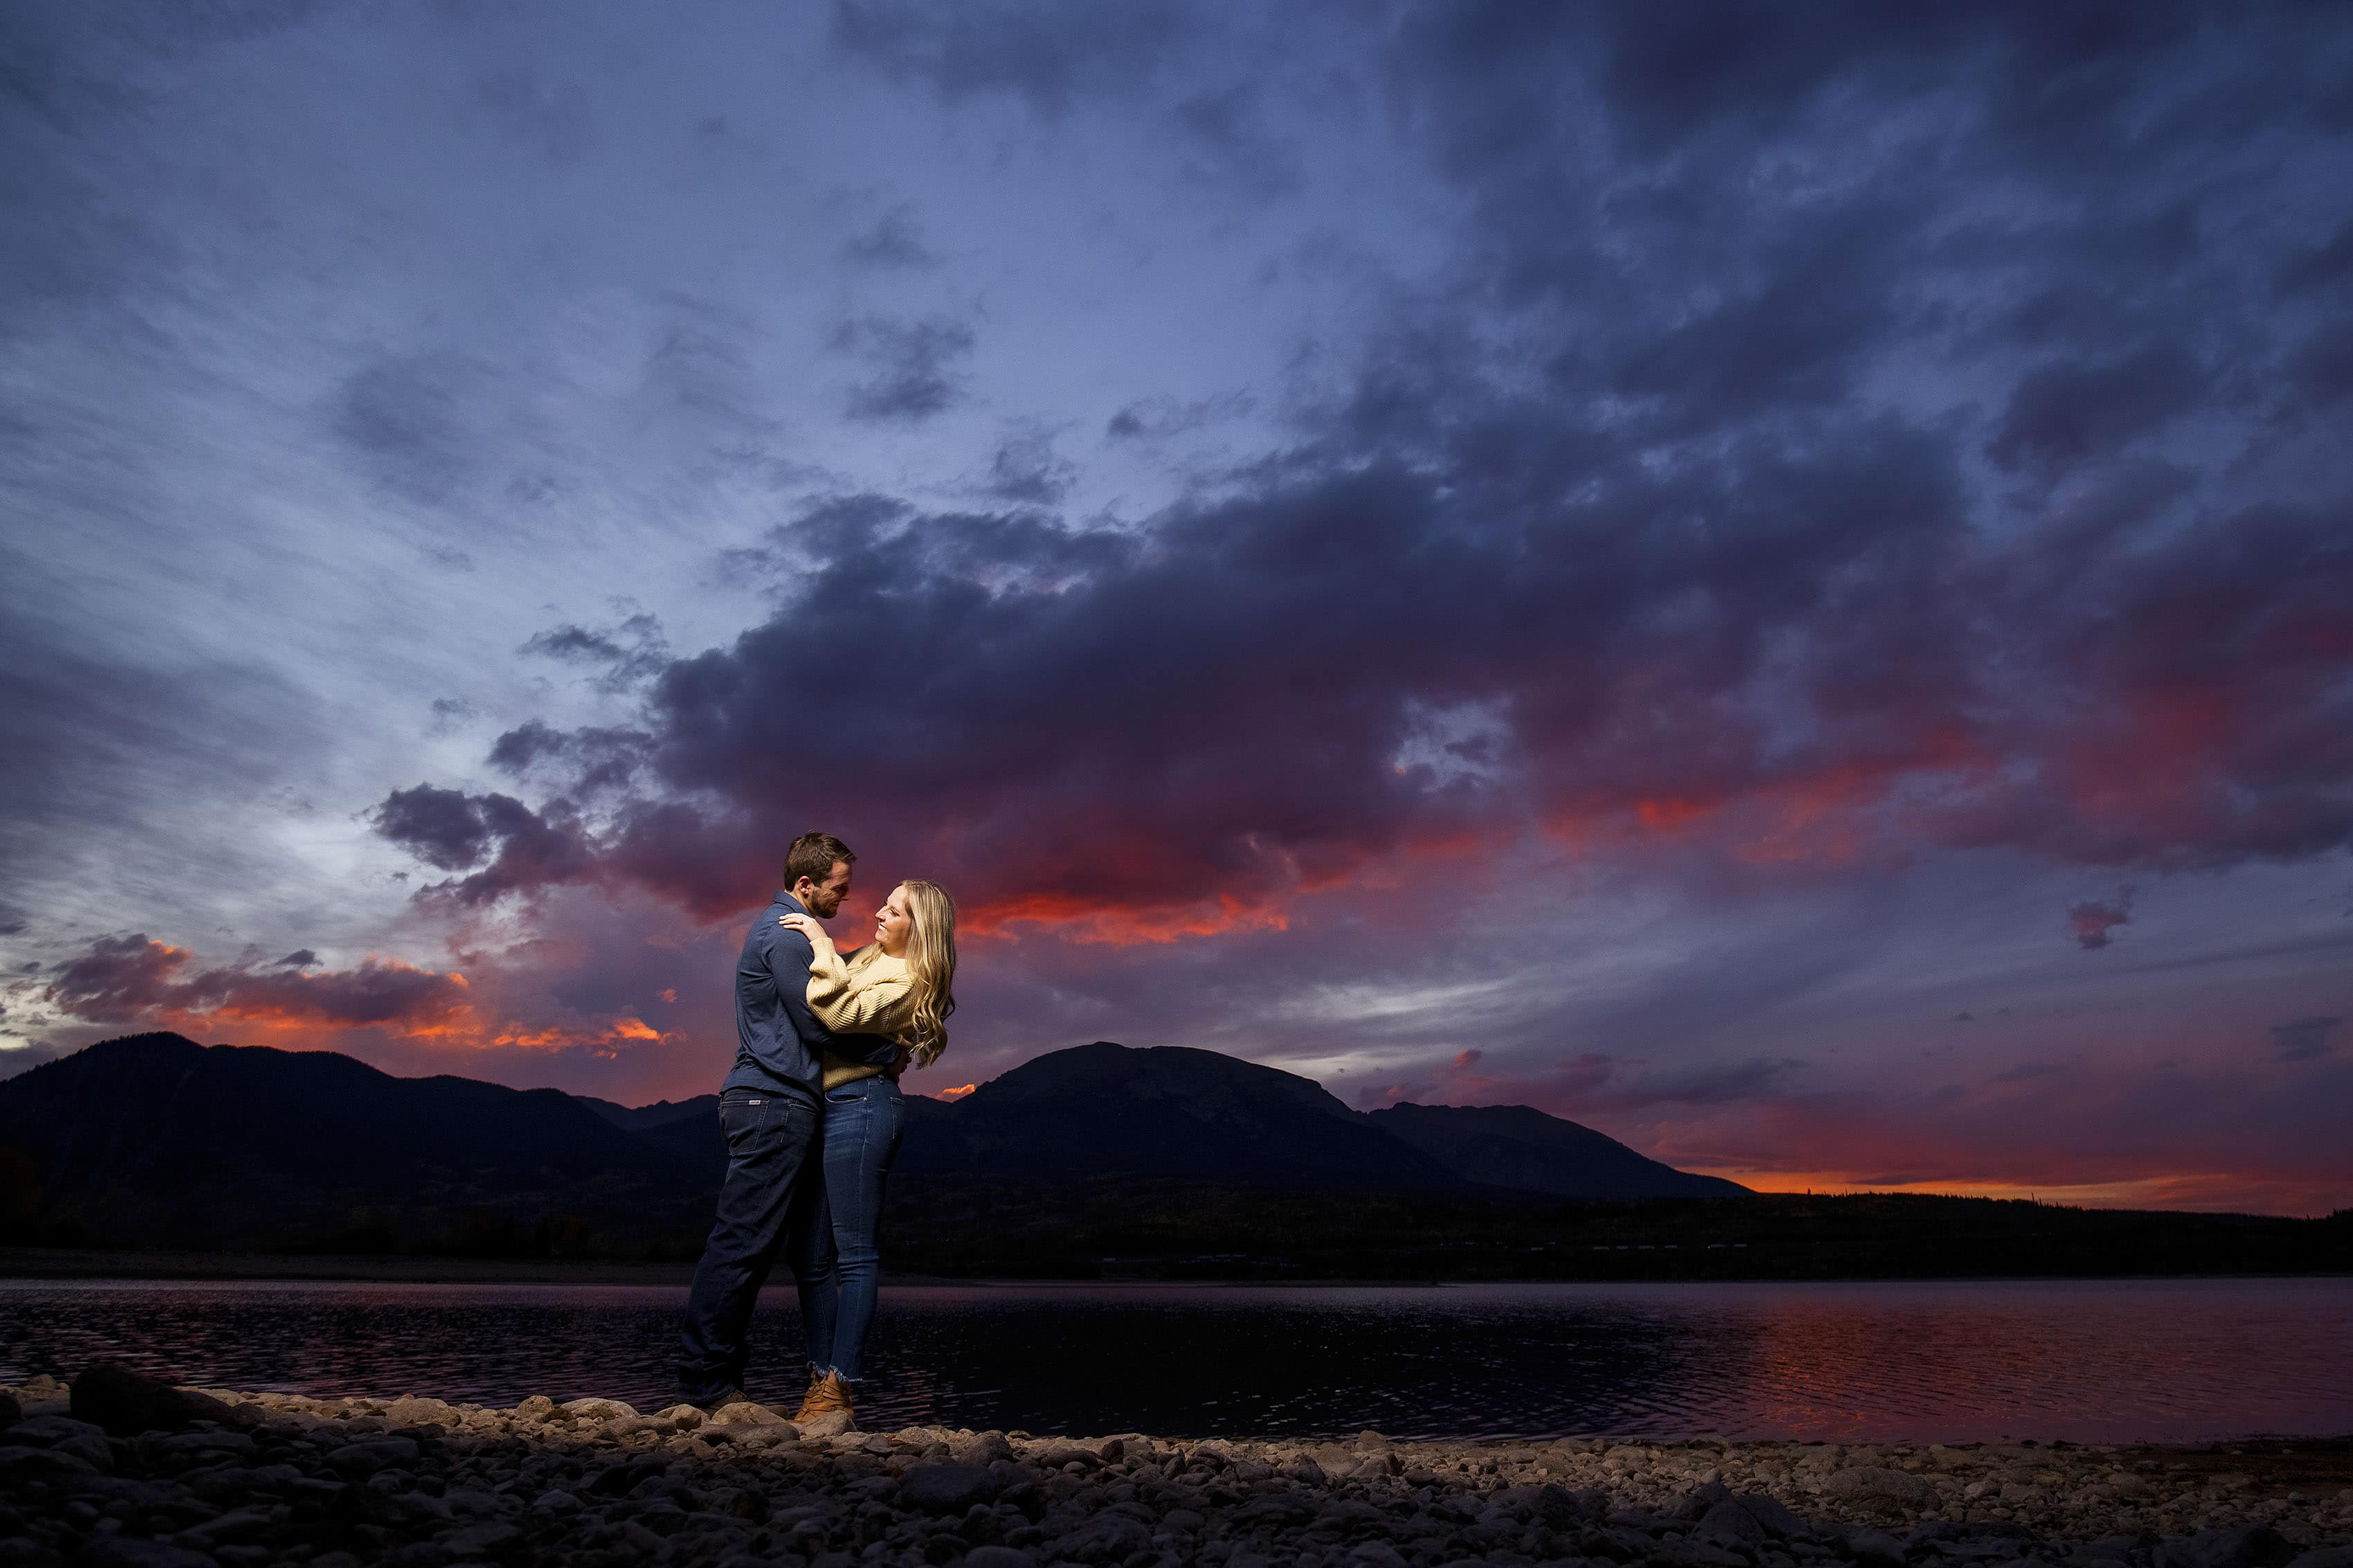 Chad embraces Jamie near the edge of Dillon Reservoir at sunset during their engagement photos